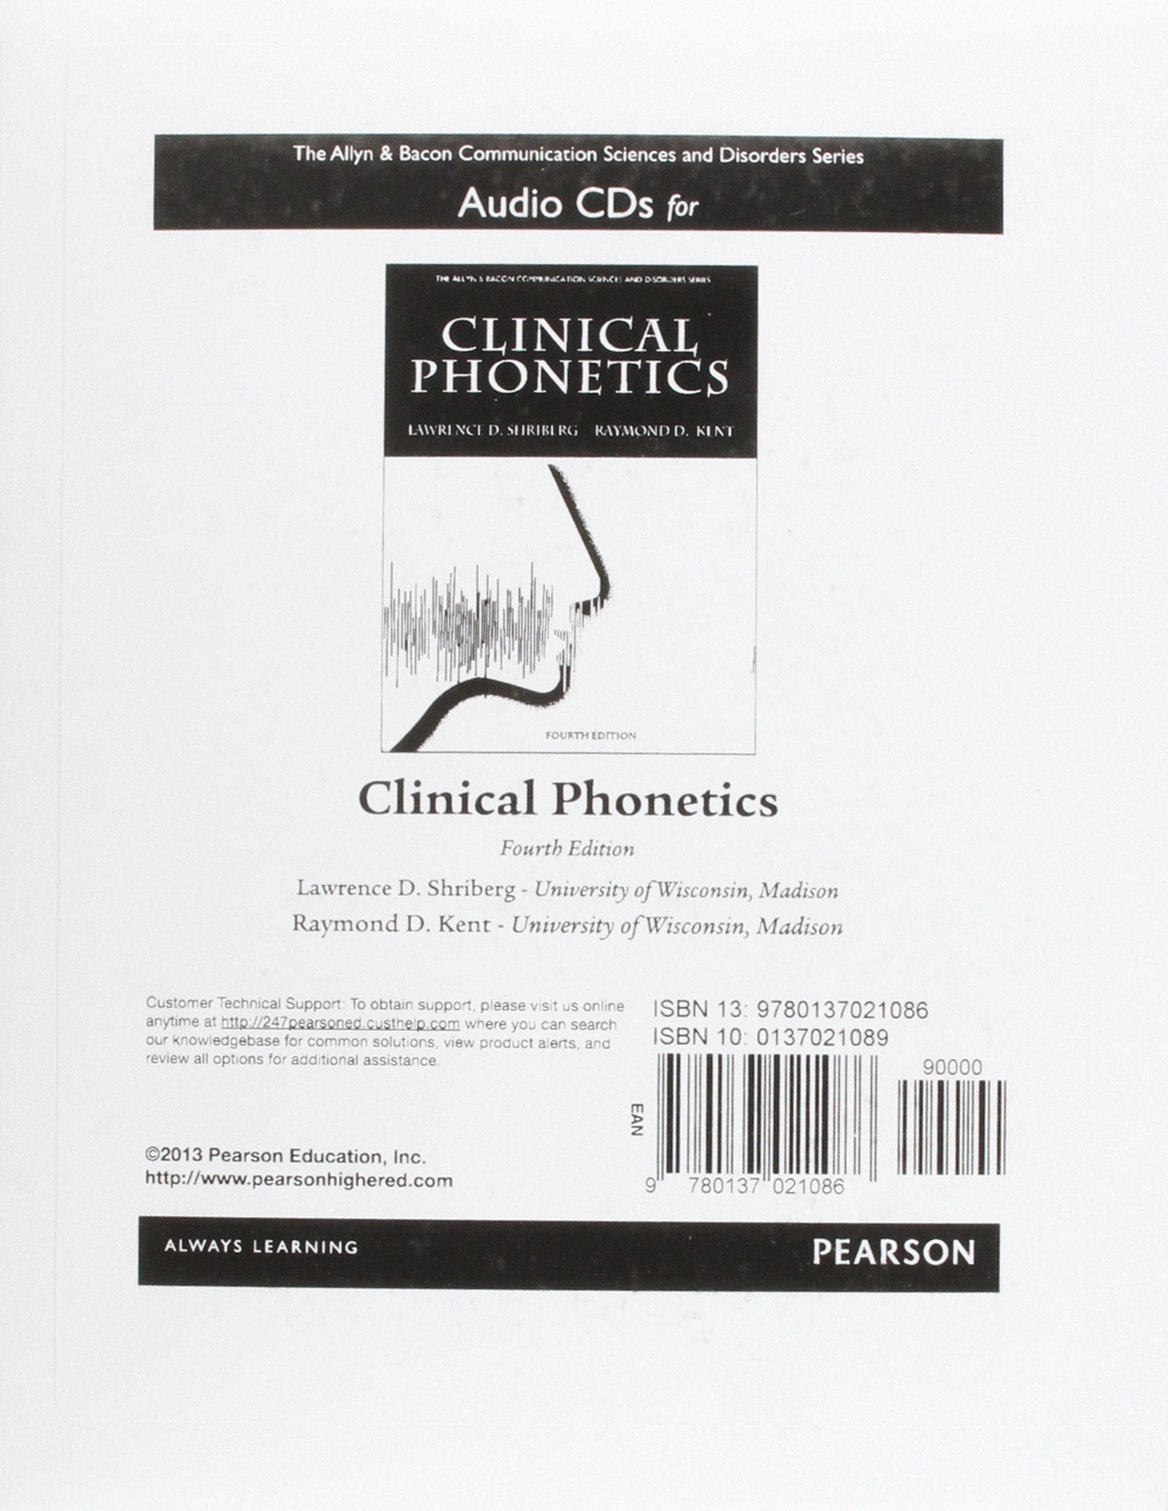 Audio CDs for Clinical Phonetics (The Allyn & Bacon Communication Sciences and Disorders Series) by Brand: Pearson